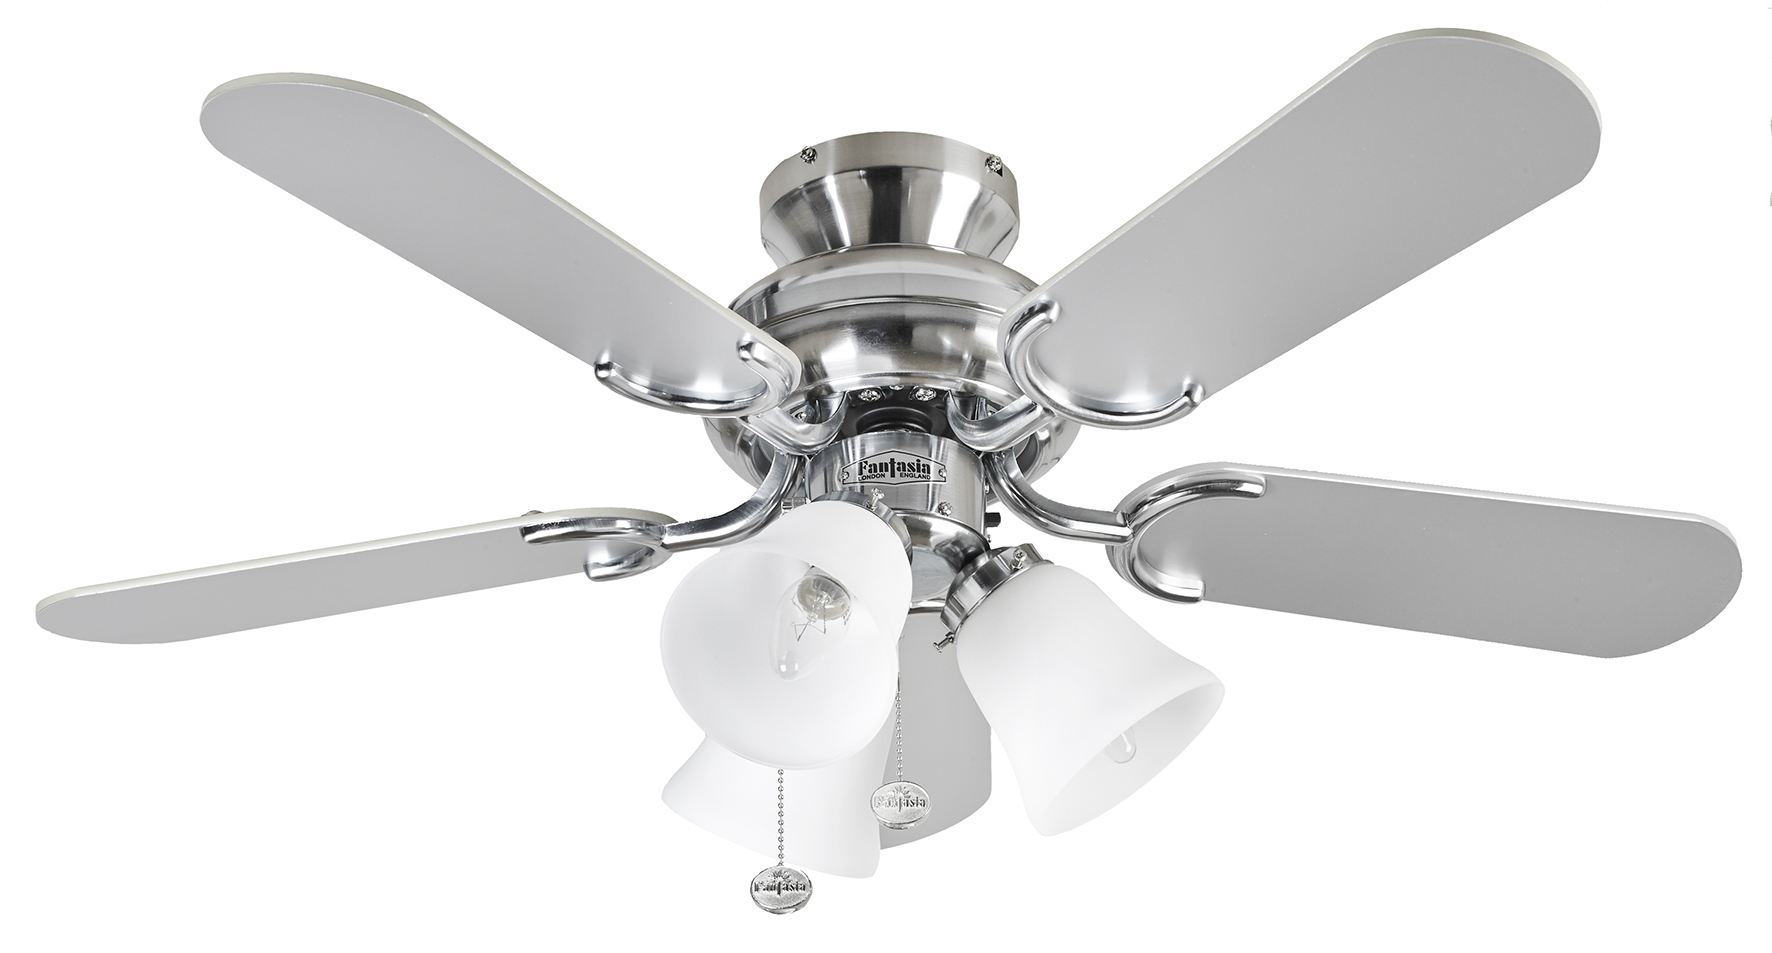 Fantasia Capri Combi 36 Stainless Steel Ceiling Fan Light